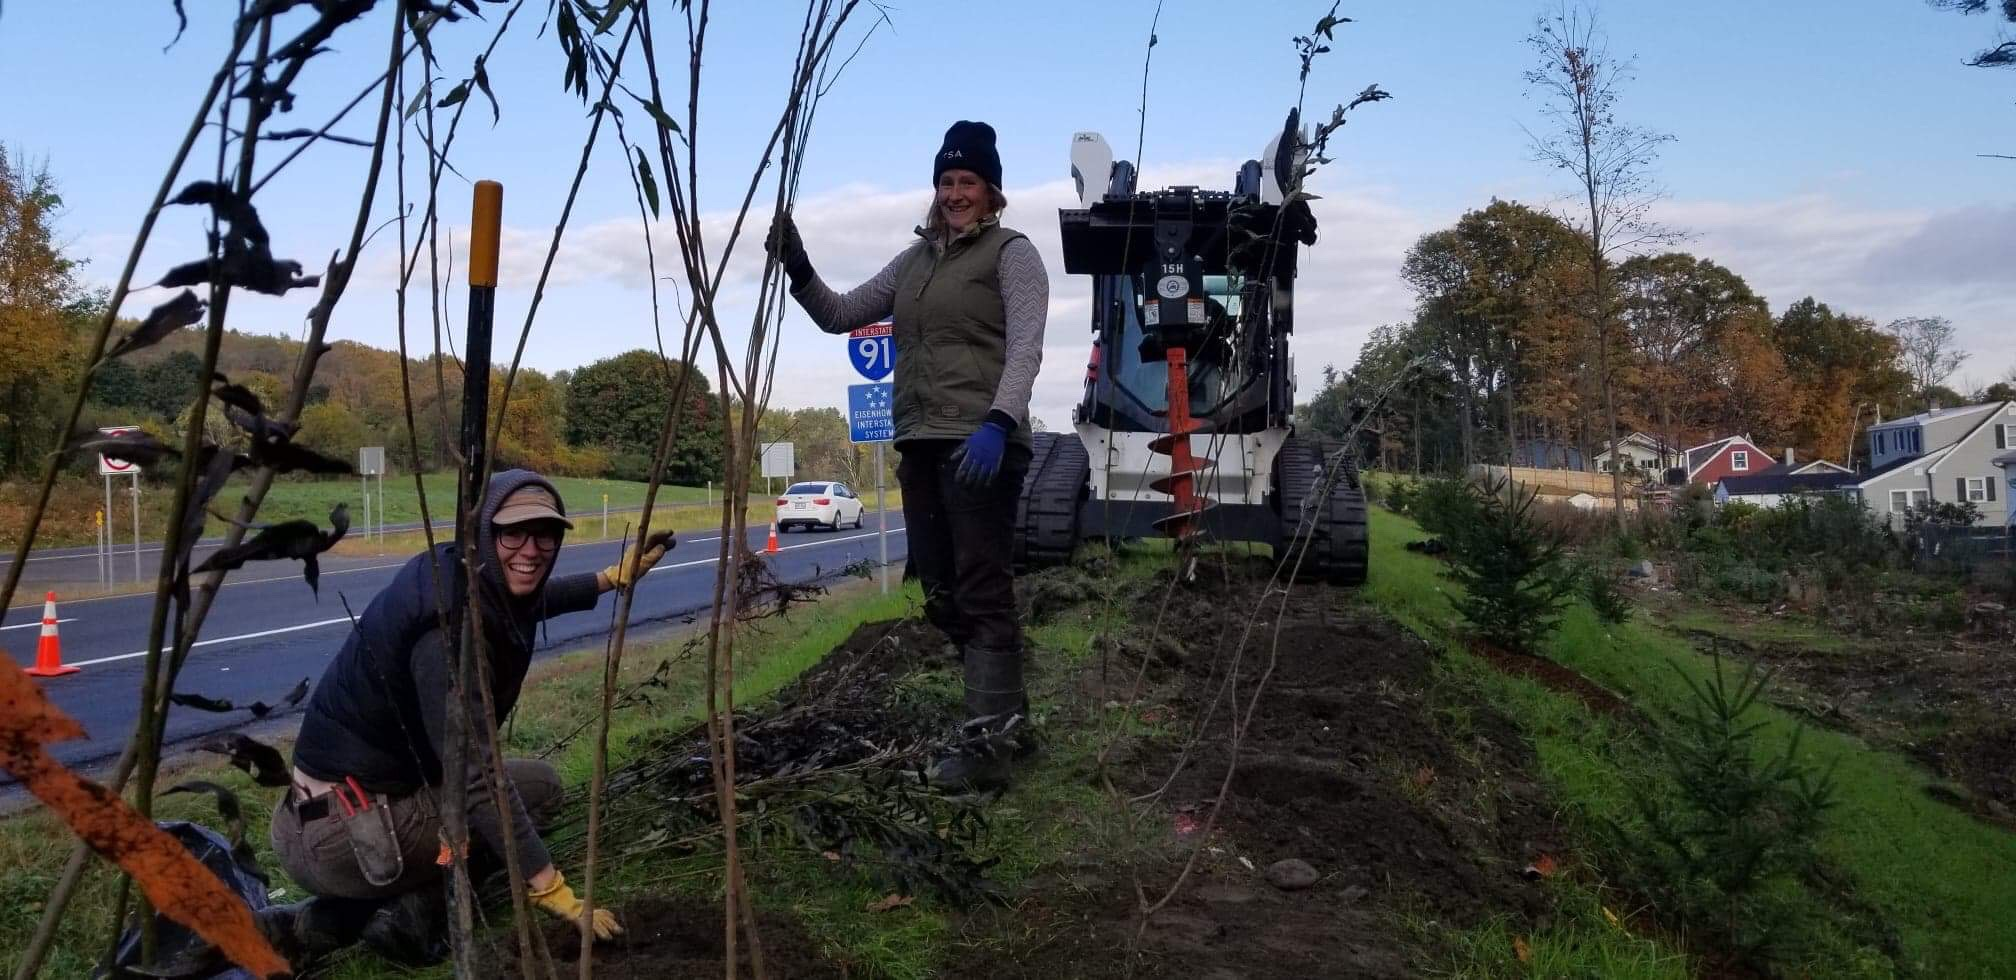 Our crew planted over 200 shrubs on a berm off the side of I-91 in Brattleboro with VTrans as a protective screen for a neighborhood.